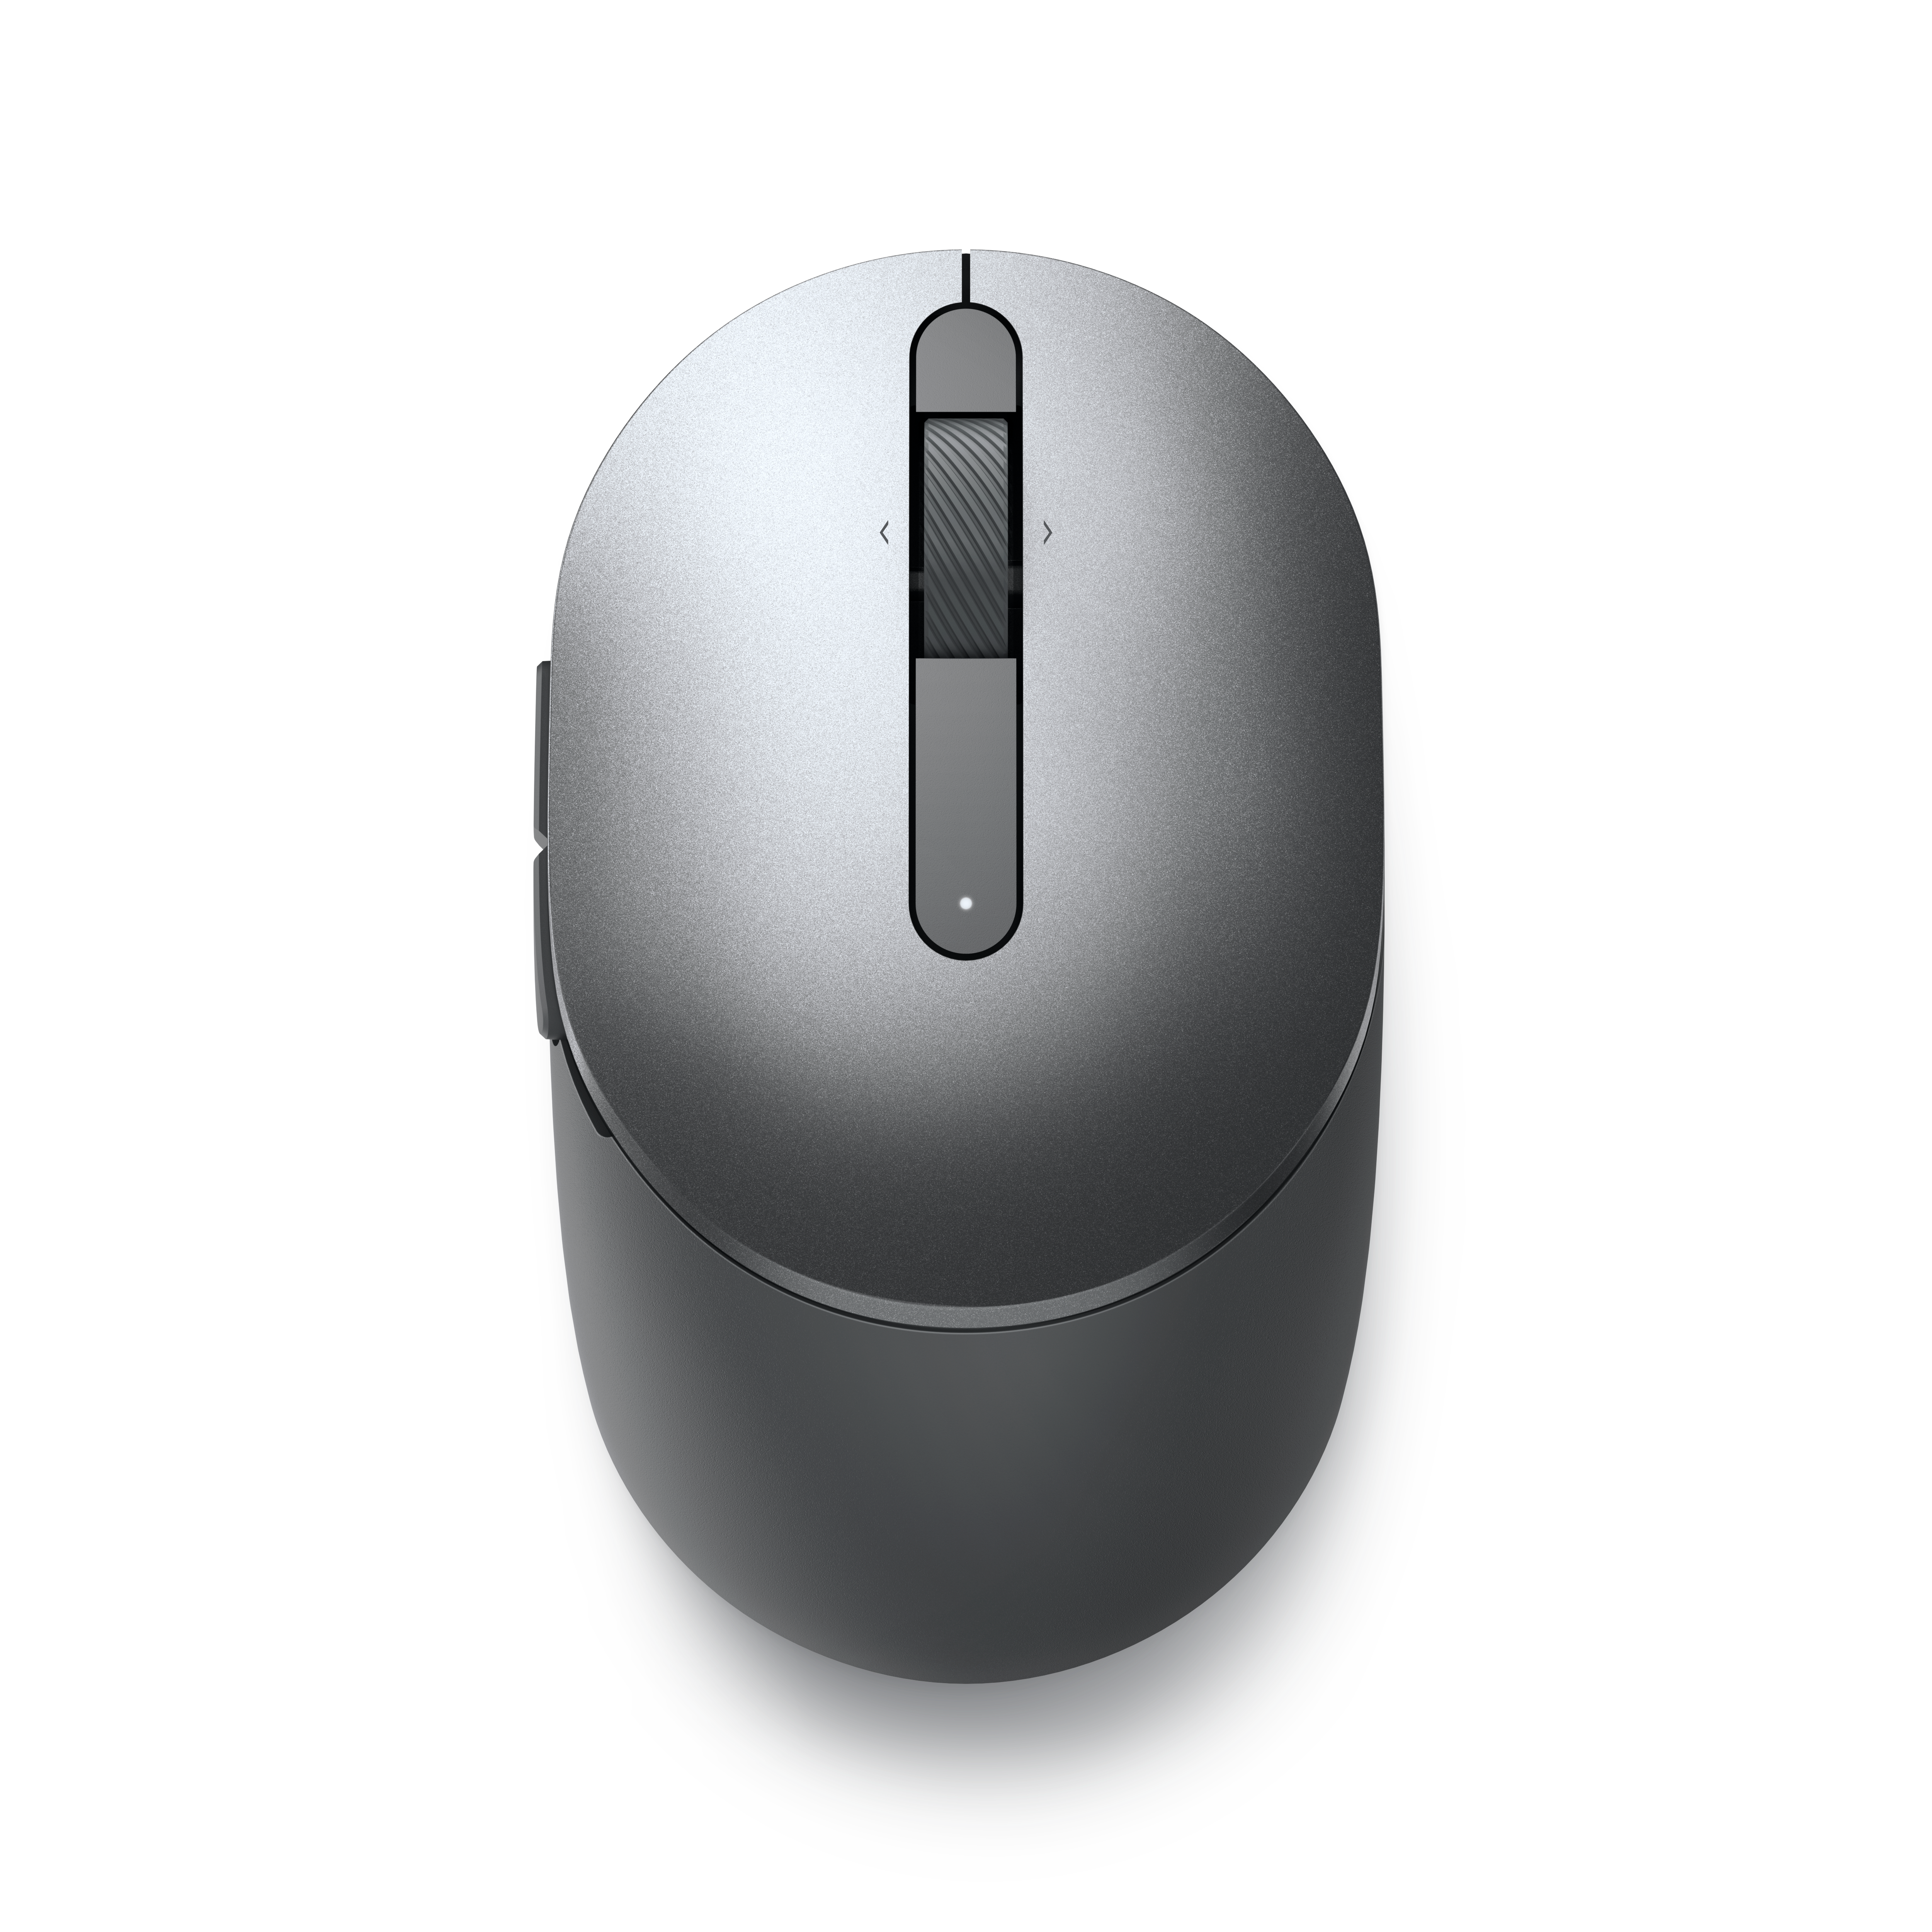 Dell Mouse Ms5120w Wireless Bluetooth Wireless Mouse Mouse